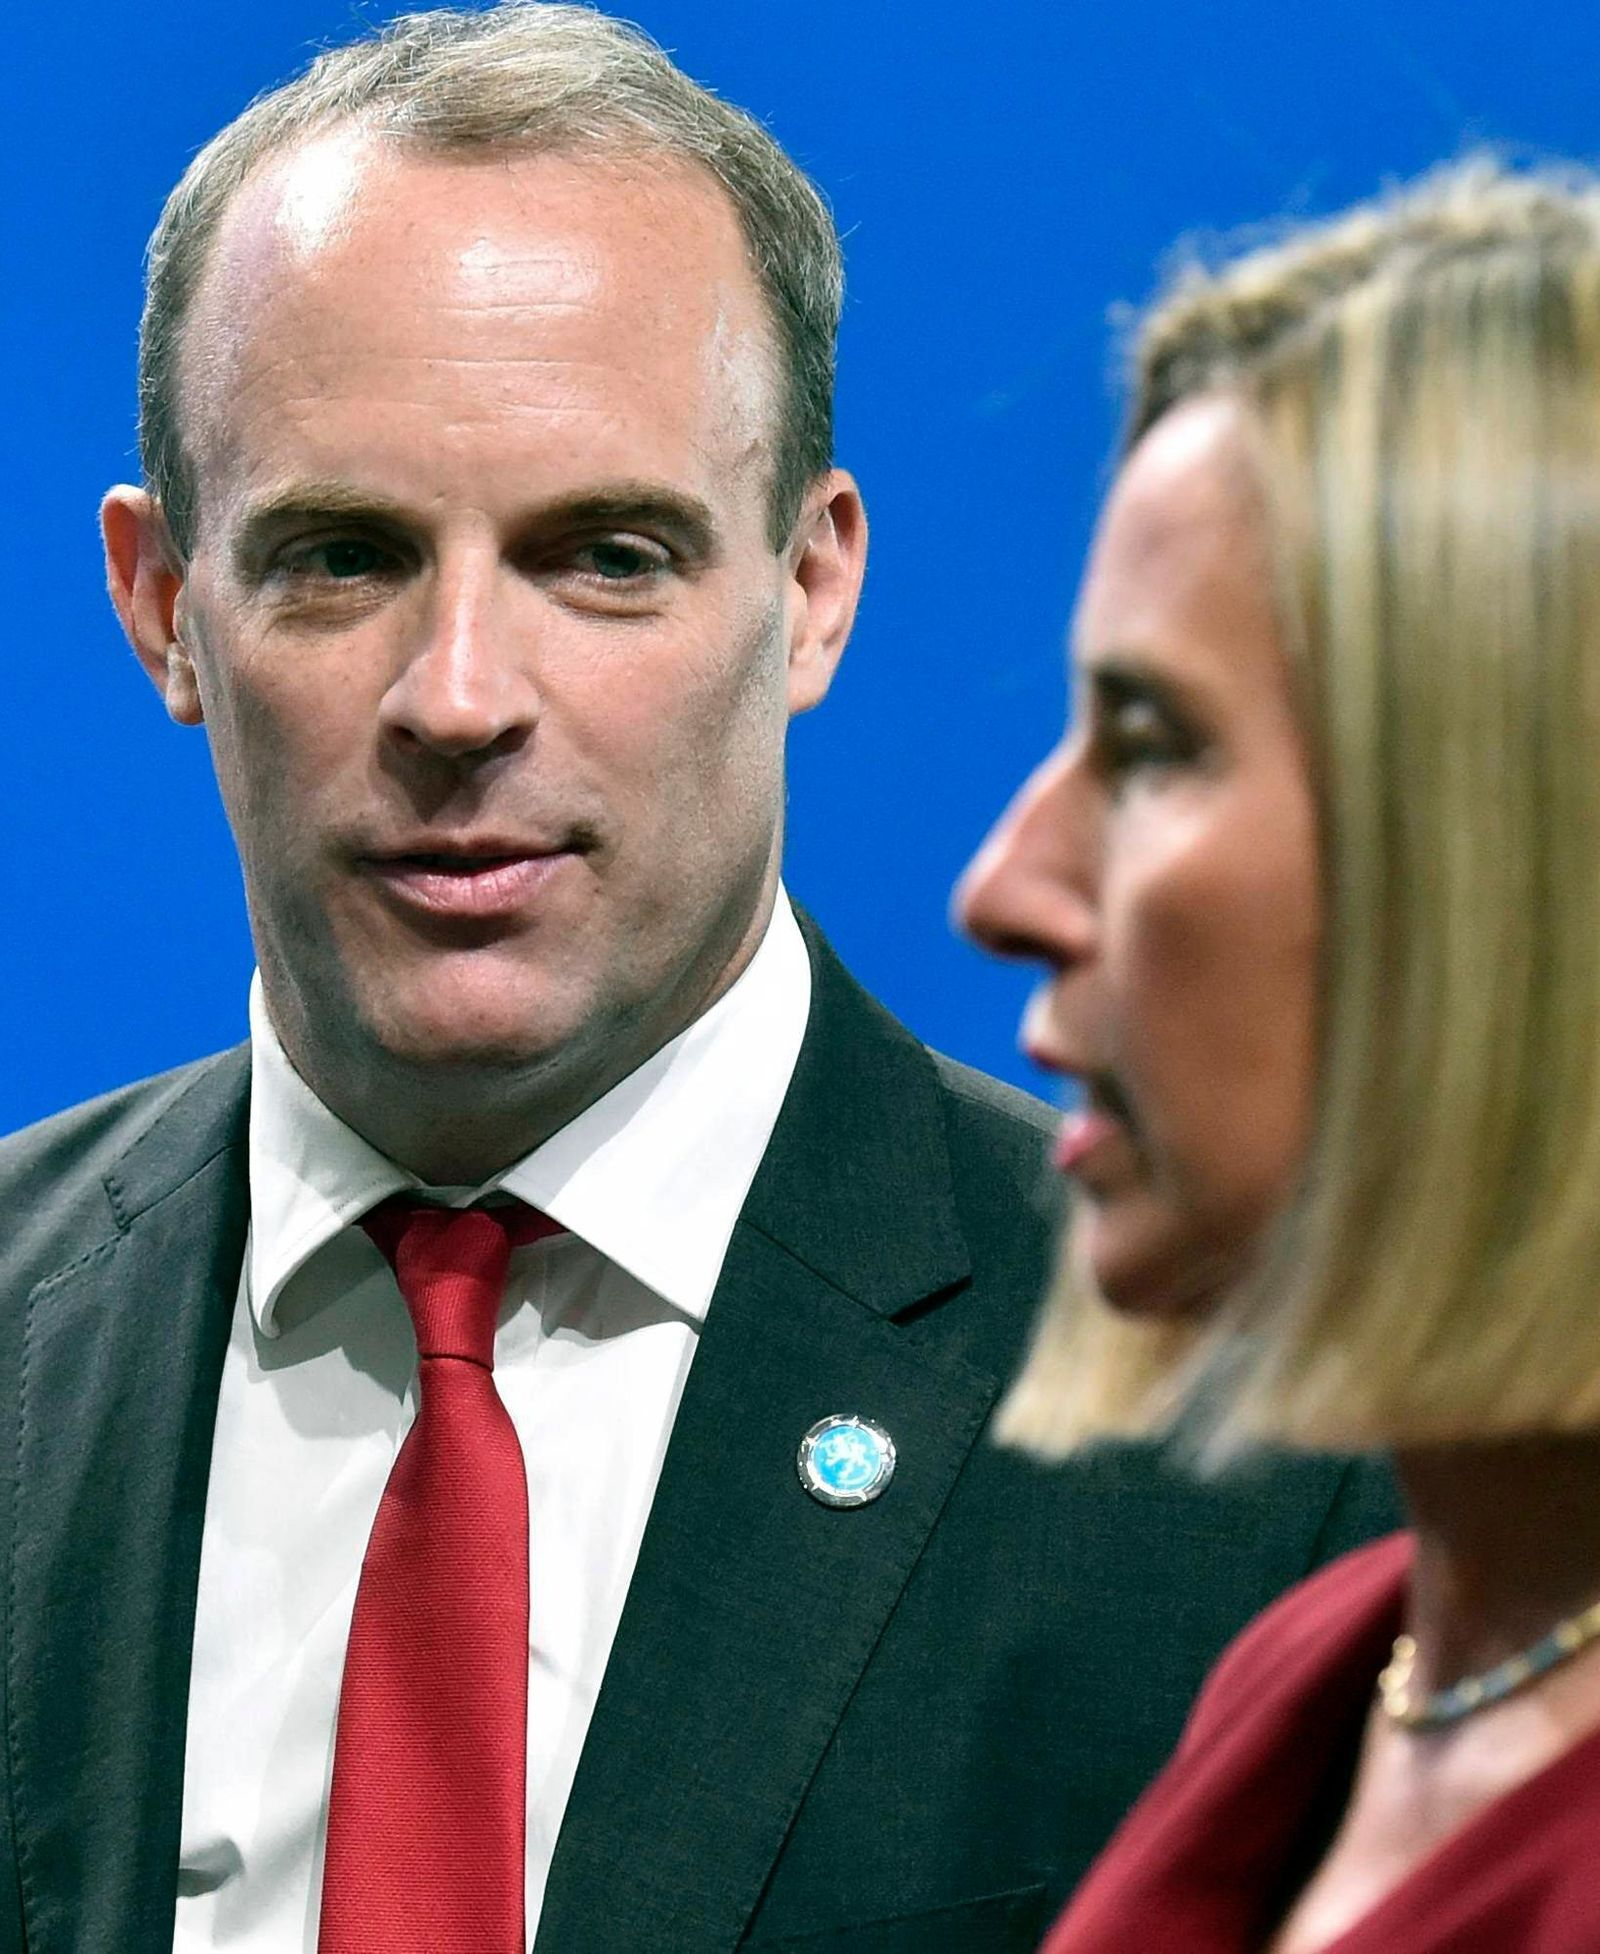 British Foreign Secretary Dominic Raab, left, speaks with European Union Foreign Policy Chief Federica Mogherini during the Informal Meeting of EU Foreign Ministers in Helsinki, Finland, Thursday Aug. 29, 2019. (Jussi Nukari/Lehtikuva via AP)